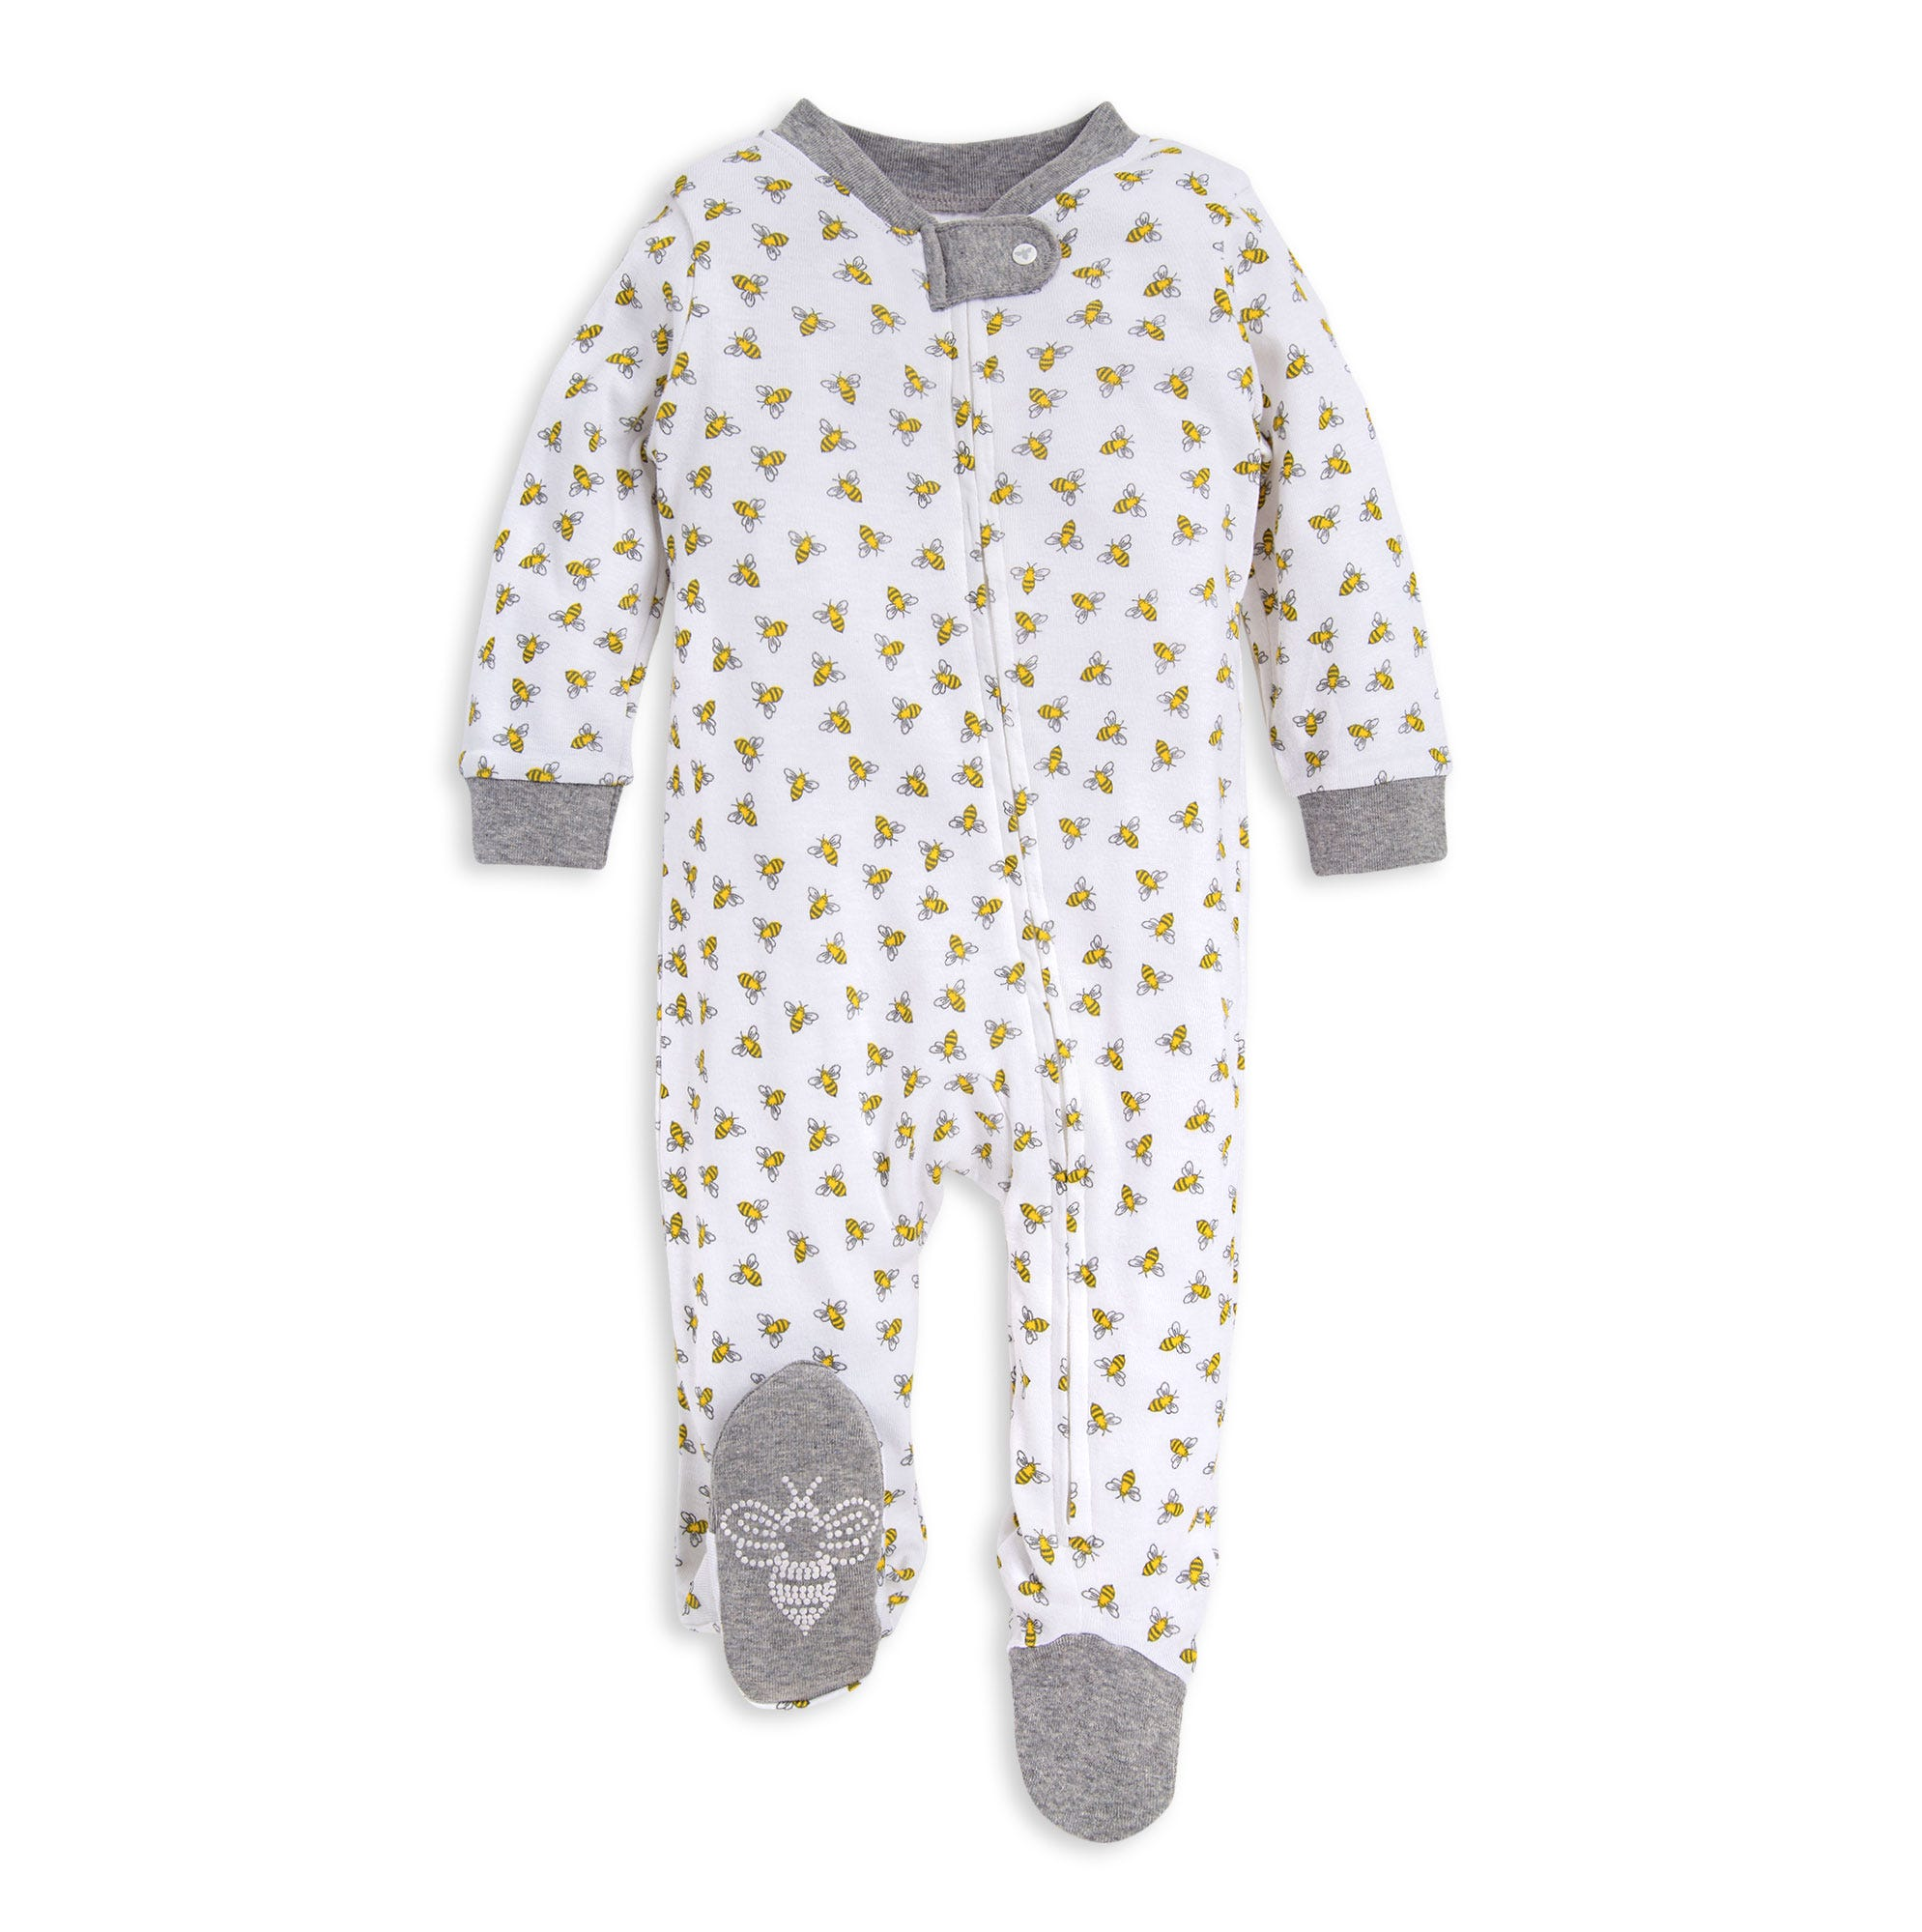 Burts Bees Baby Baby Girls Toddler Sleepers